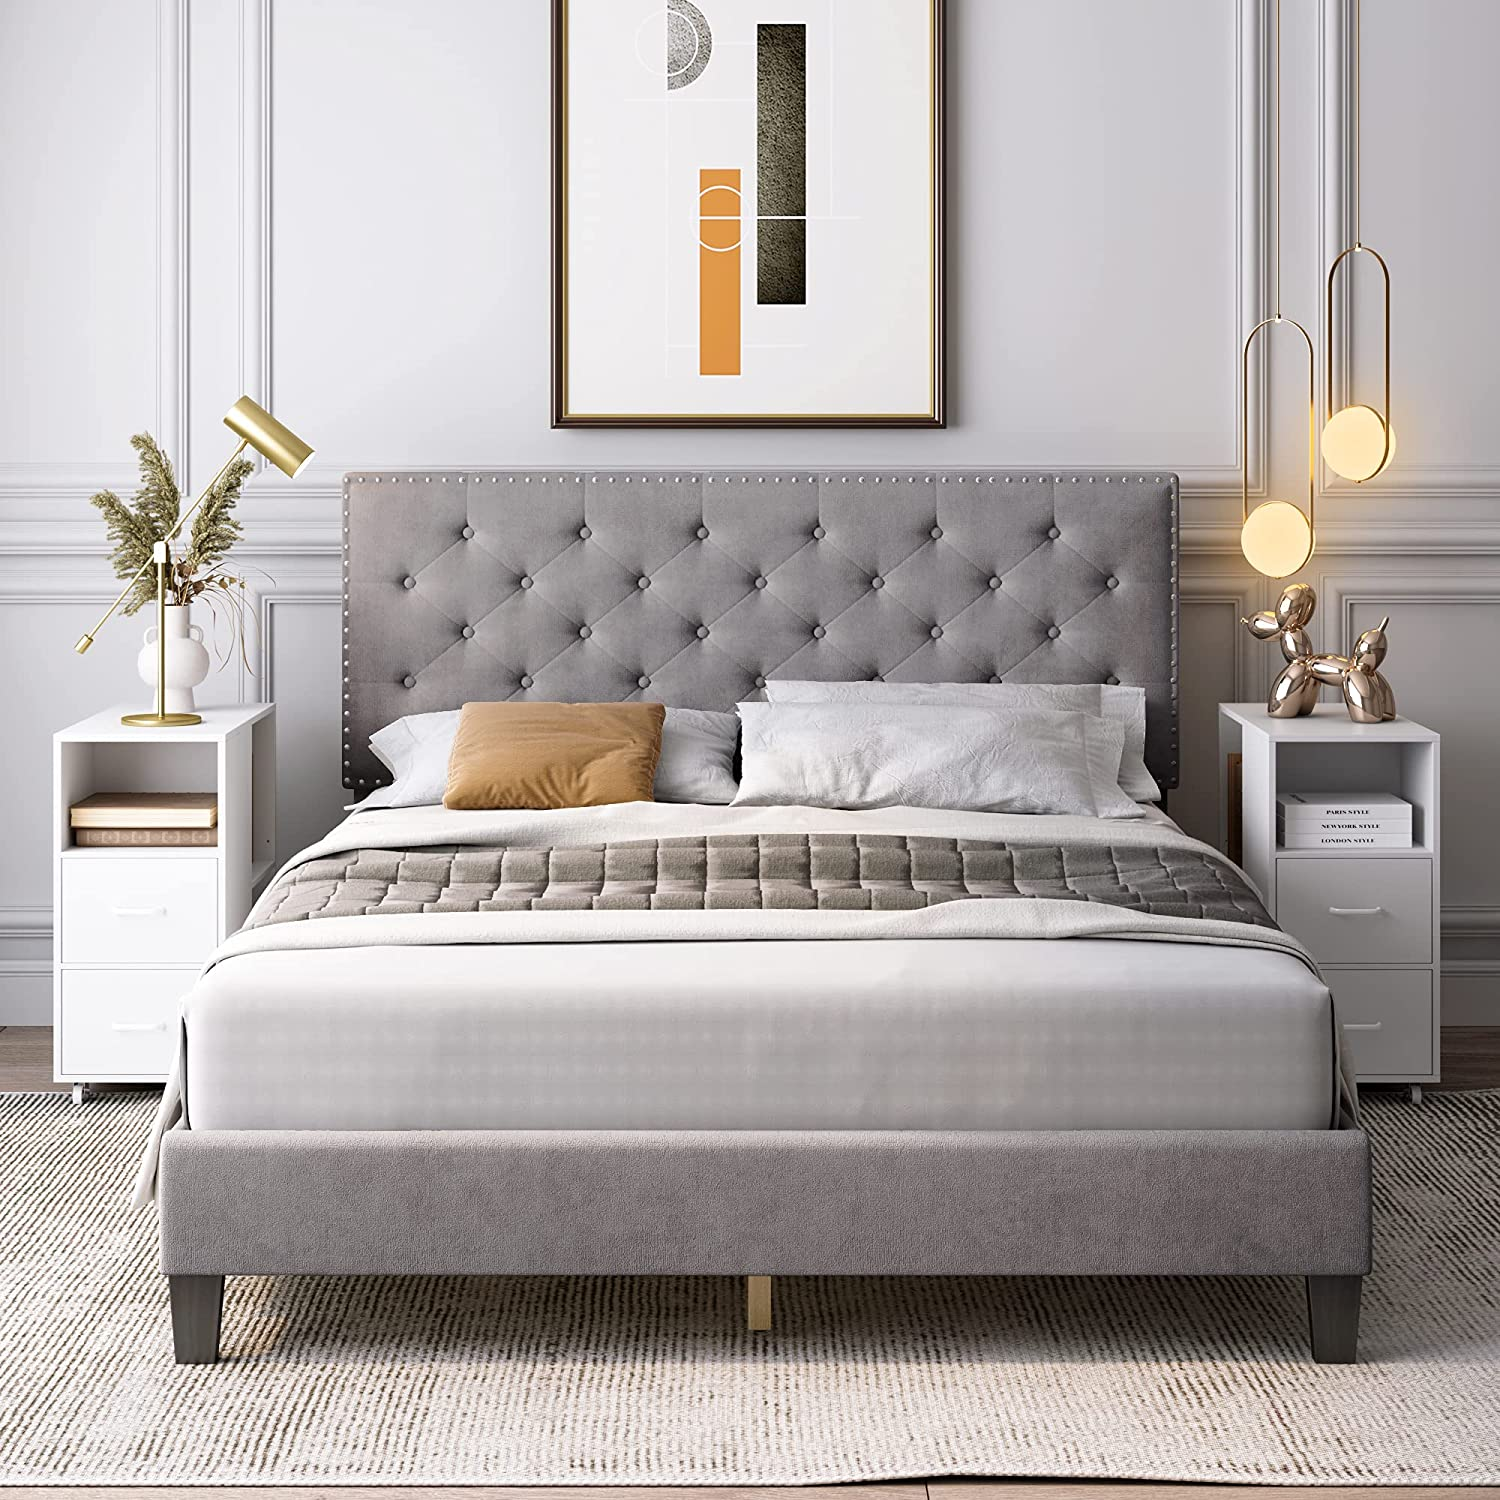 Full Bed Frame, Upholstered Platform Bed Frame with Adjustable Headboard, Button Tufted Mattress Foundation with Sturdy Wood Slat Support, No Box Spring Required, Easy Assembly (Grey, Full)